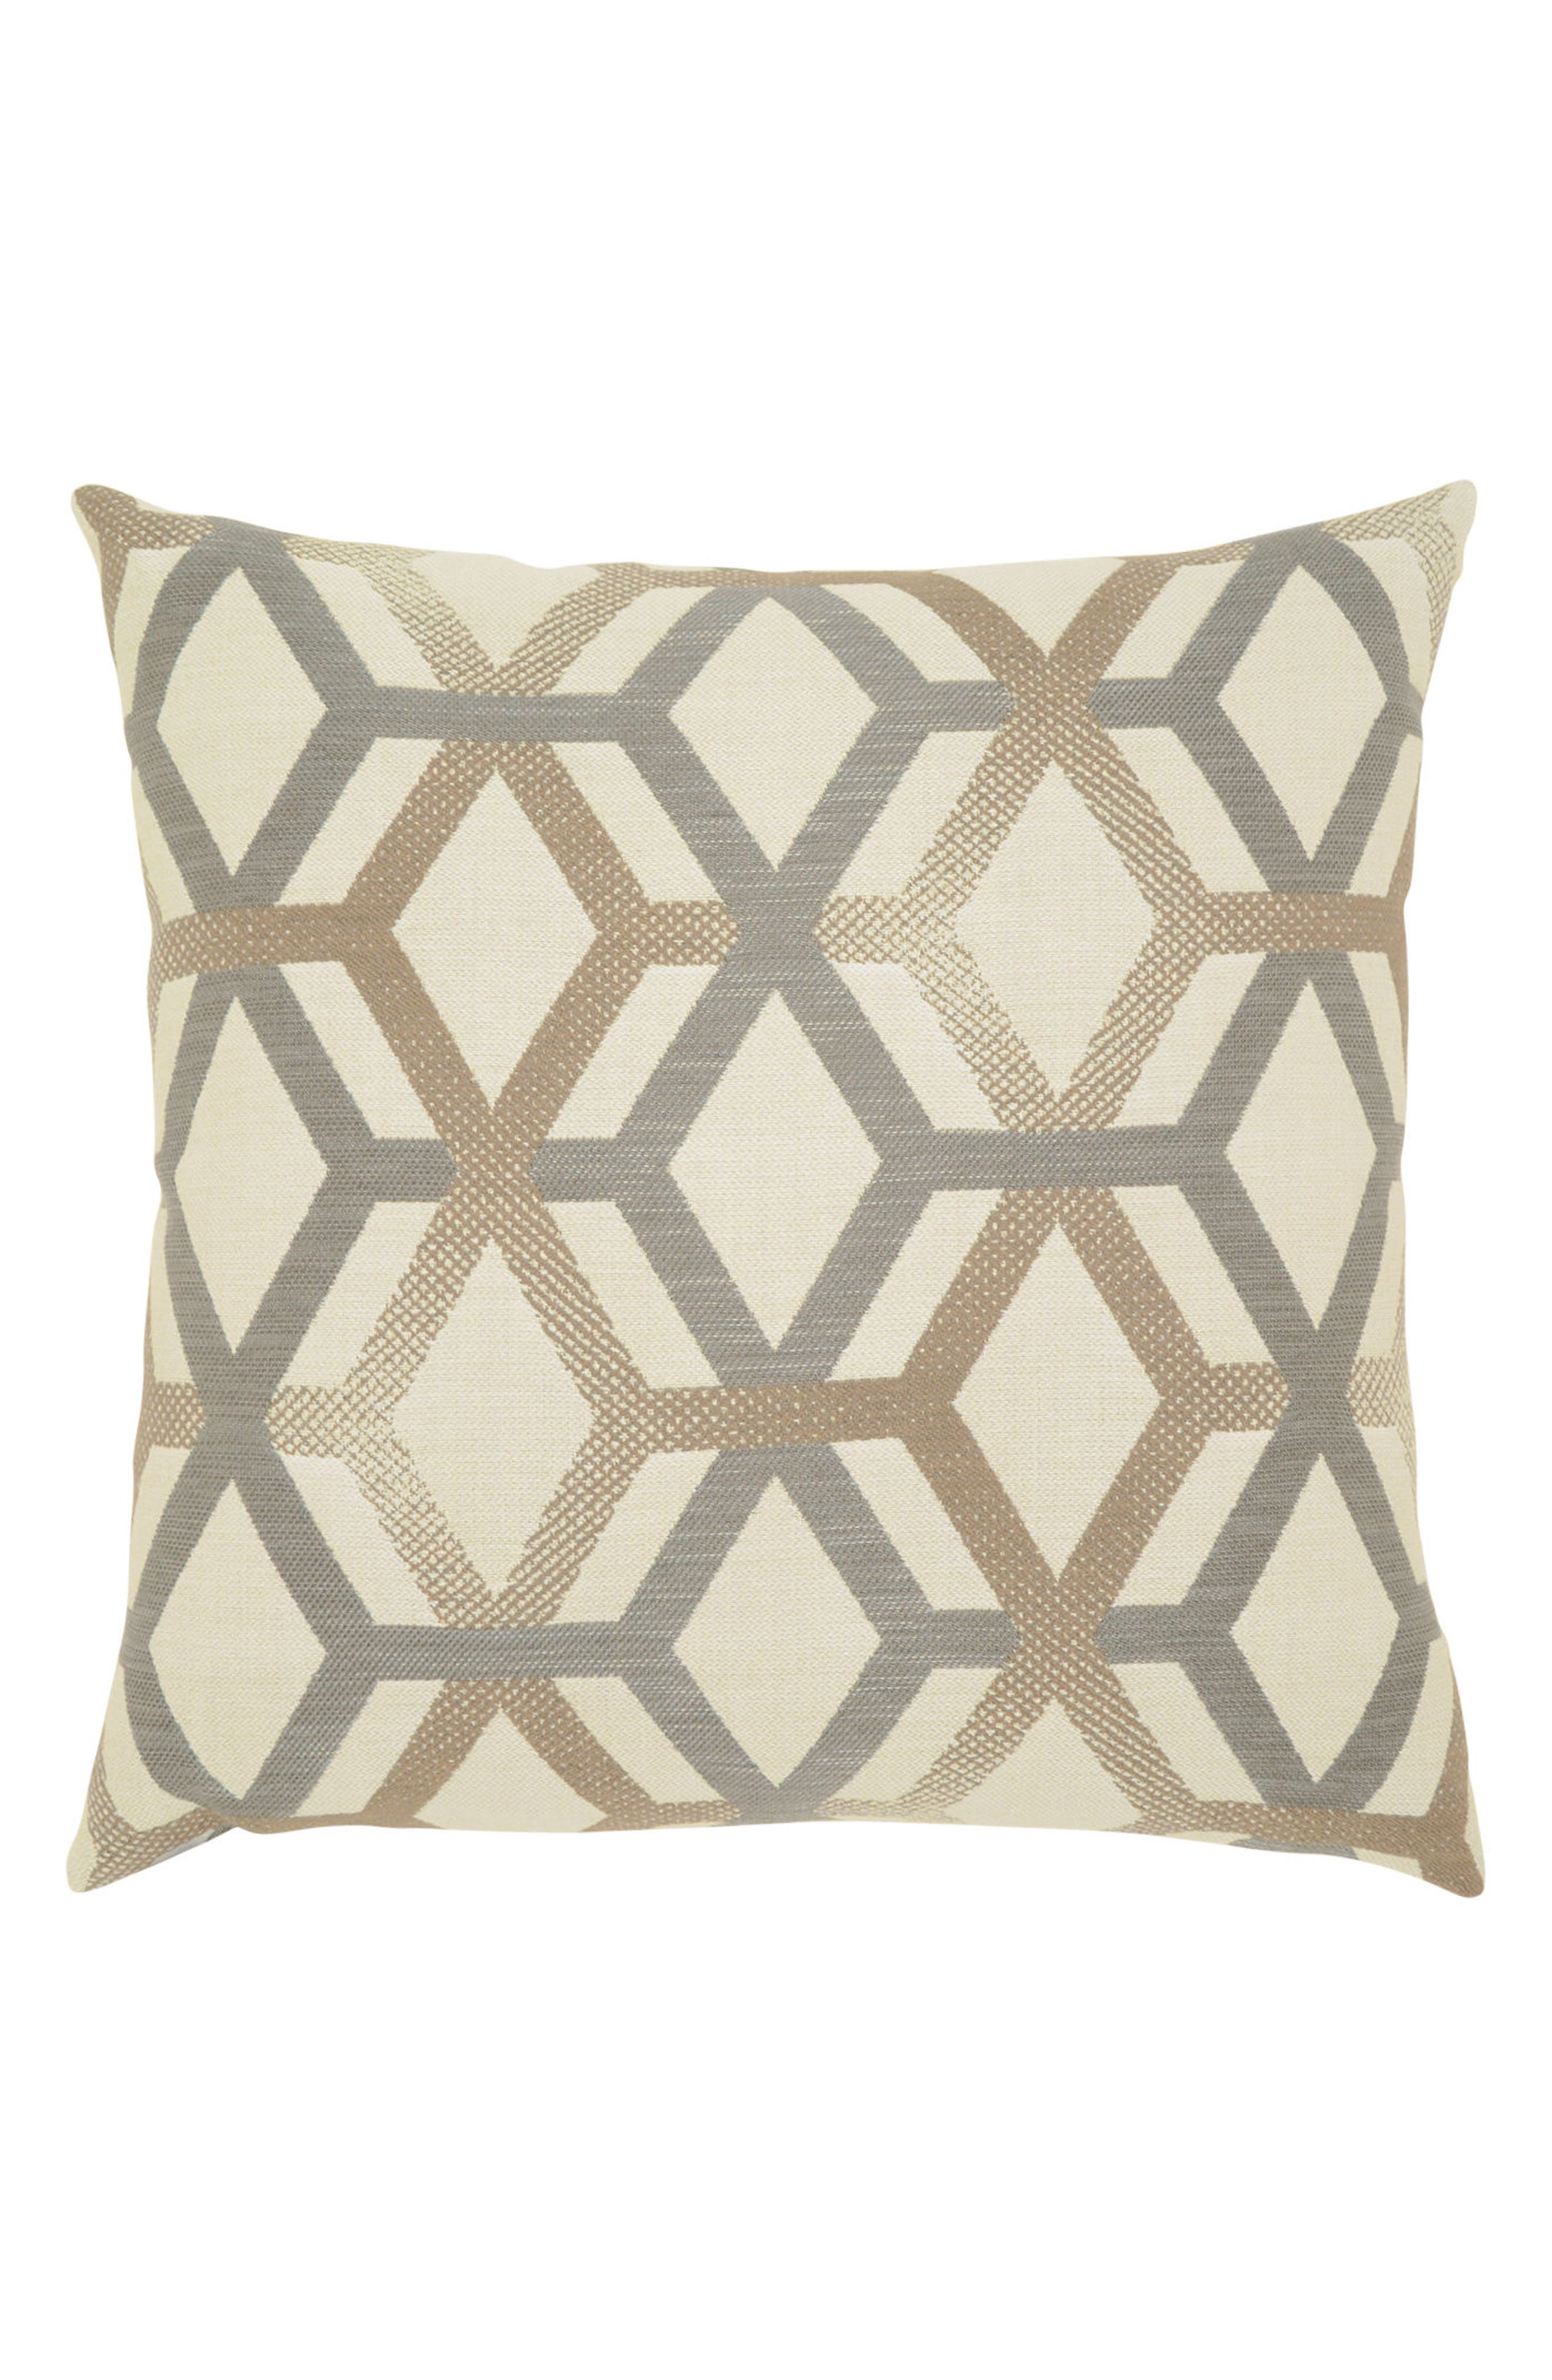 Elaine Smith Lustrous Lines Indoor/Outdoor Accent Pillow